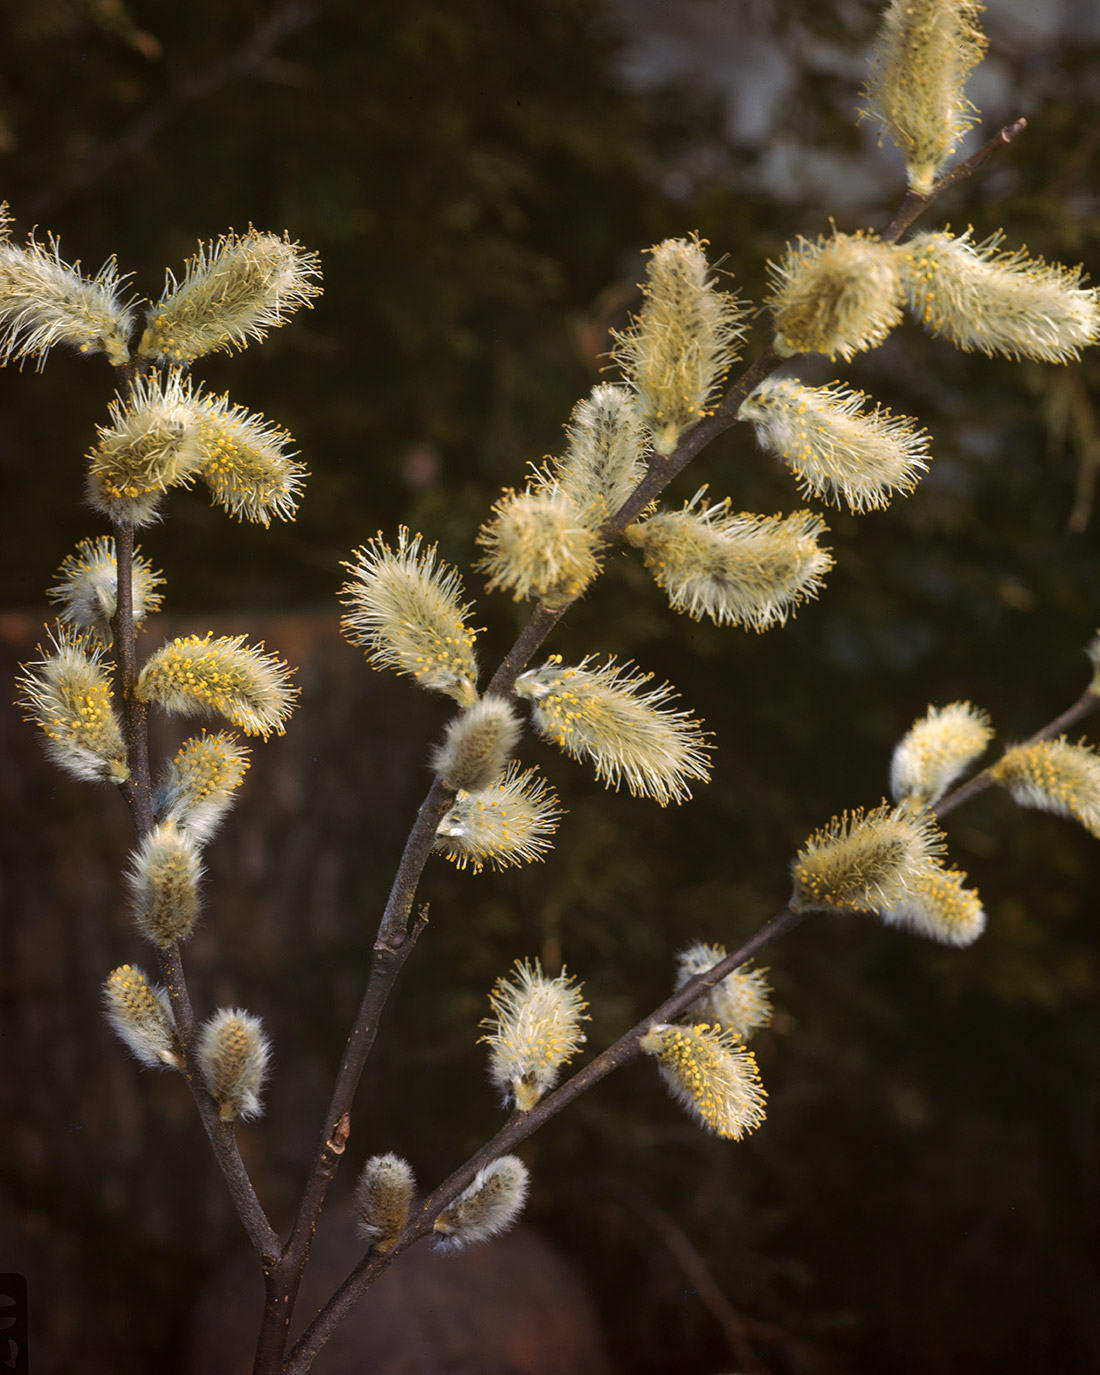 Mature catkins of a willow